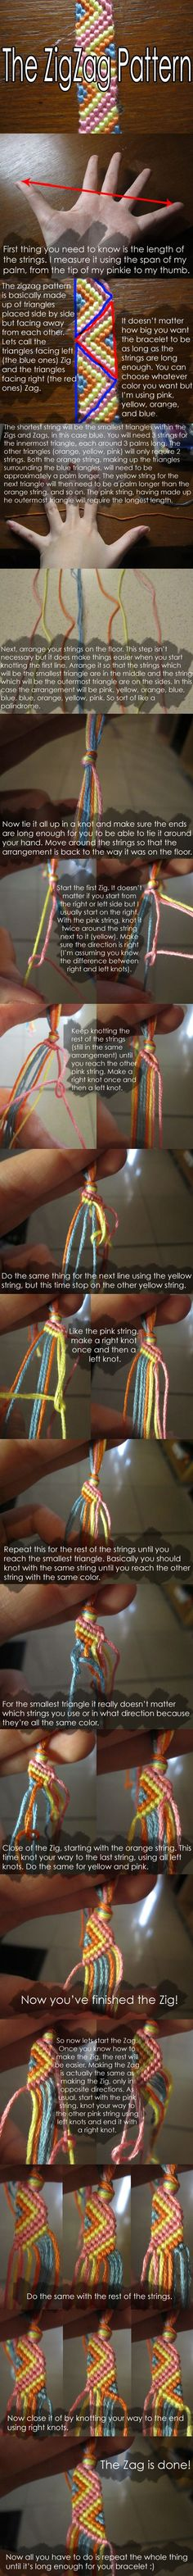 Zigzag Bracelet Tutorial always wanted to learn how to do this!